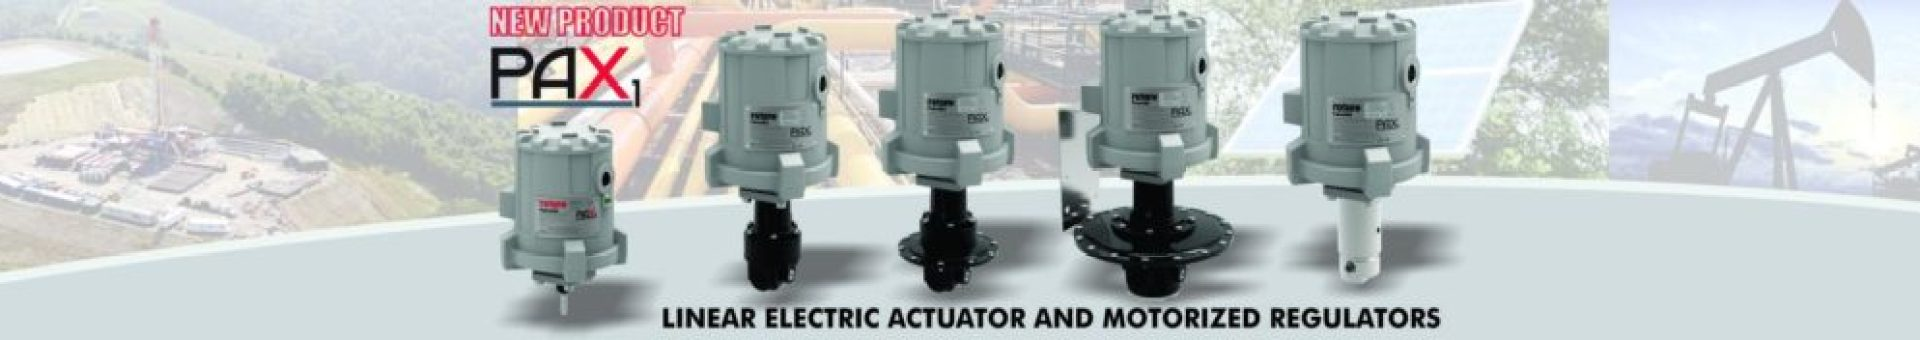 PAX1 Linear Electric Actuator and Motorized Regulator